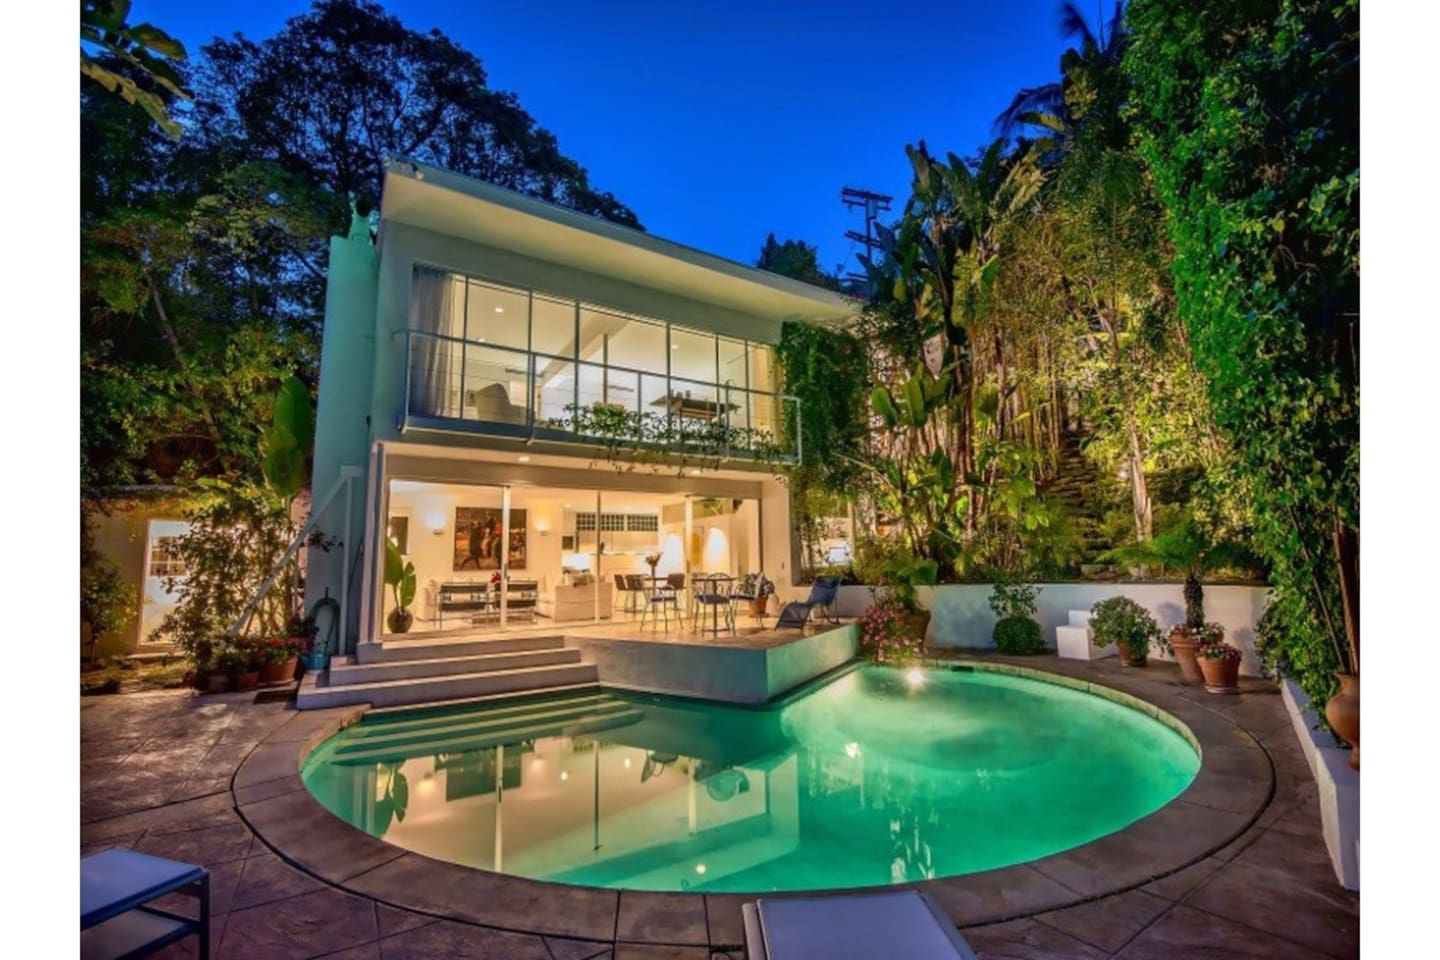 honeymoon house in hollywood hills houses for rent in los angeles